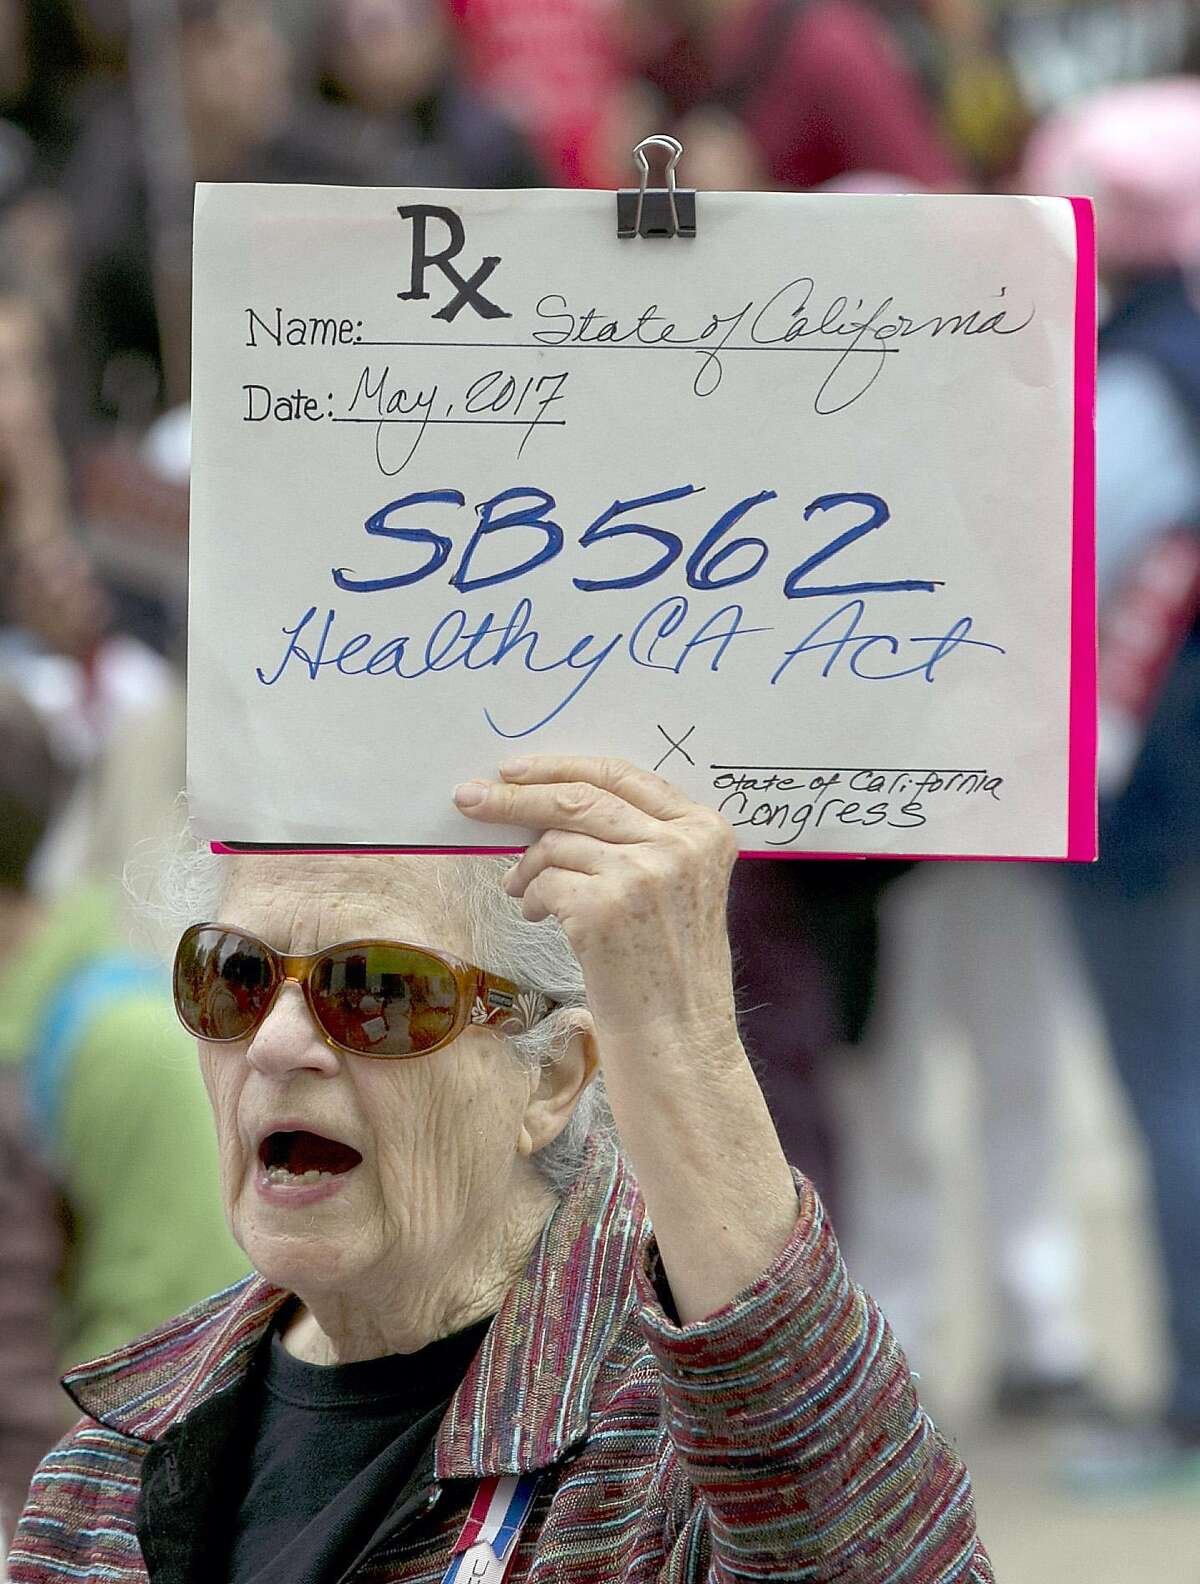 Caroline Elam holds up a mock prescription order calling for passage of SB562, a single-payer health care bill, during a march to the Capitol, Wednesday, April 26, 2017, in Sacramento, Calif. The bill, by Democratic state Sens. Ricardo Lara, of Bell Gardens, and Toni Atkins, of San Diego, would guarantee health coverage with no out-of-pocket cost for all California residents, including people living in the country illegally is to be heard in the Senate Health Committee on Wednesday. (AP Photo/Rich Pedroncelli)